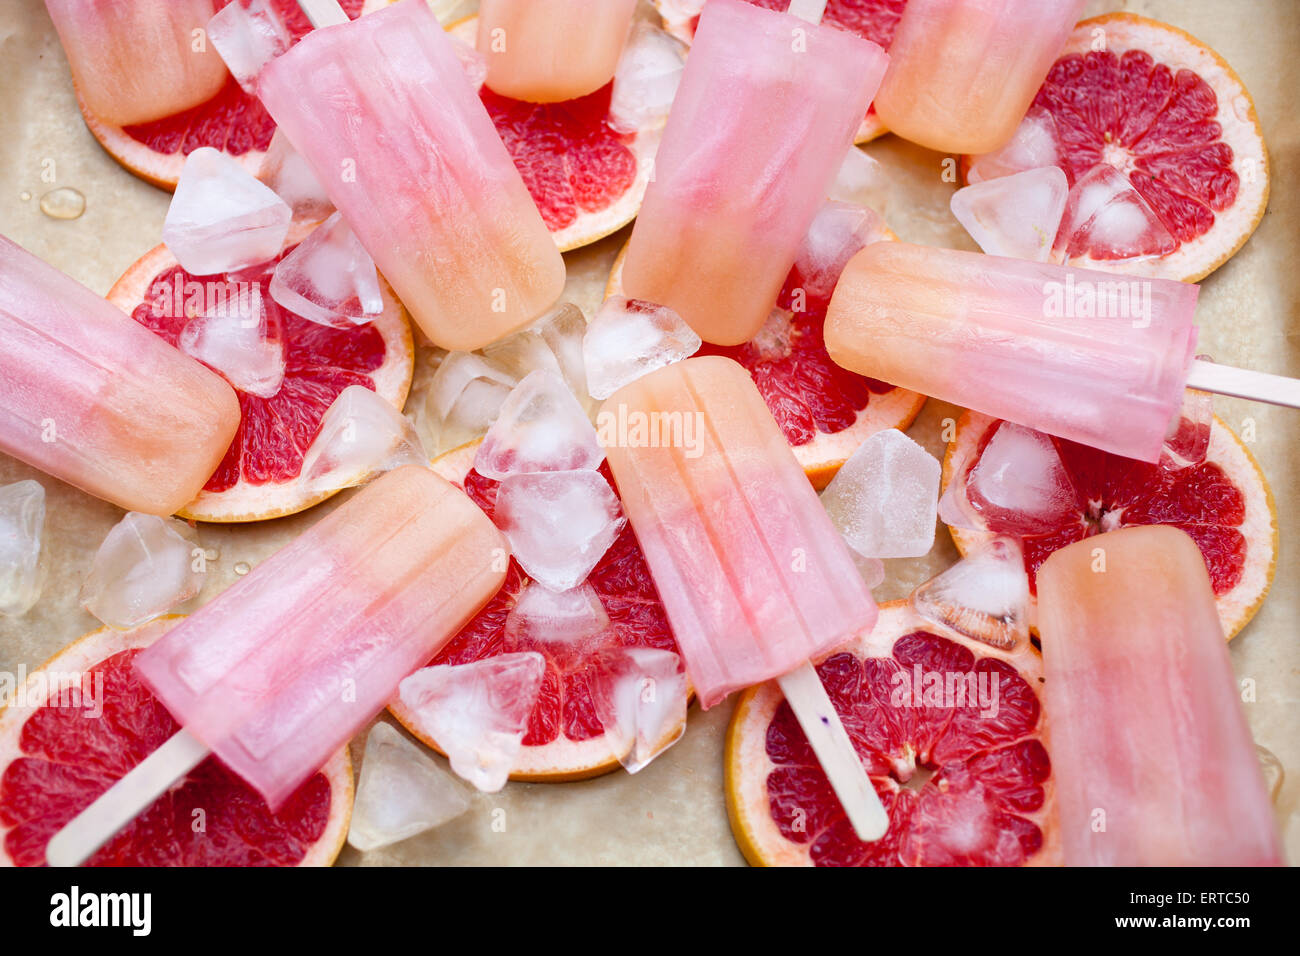 Fruity popsicles with ice and bloodorange - Stock Image